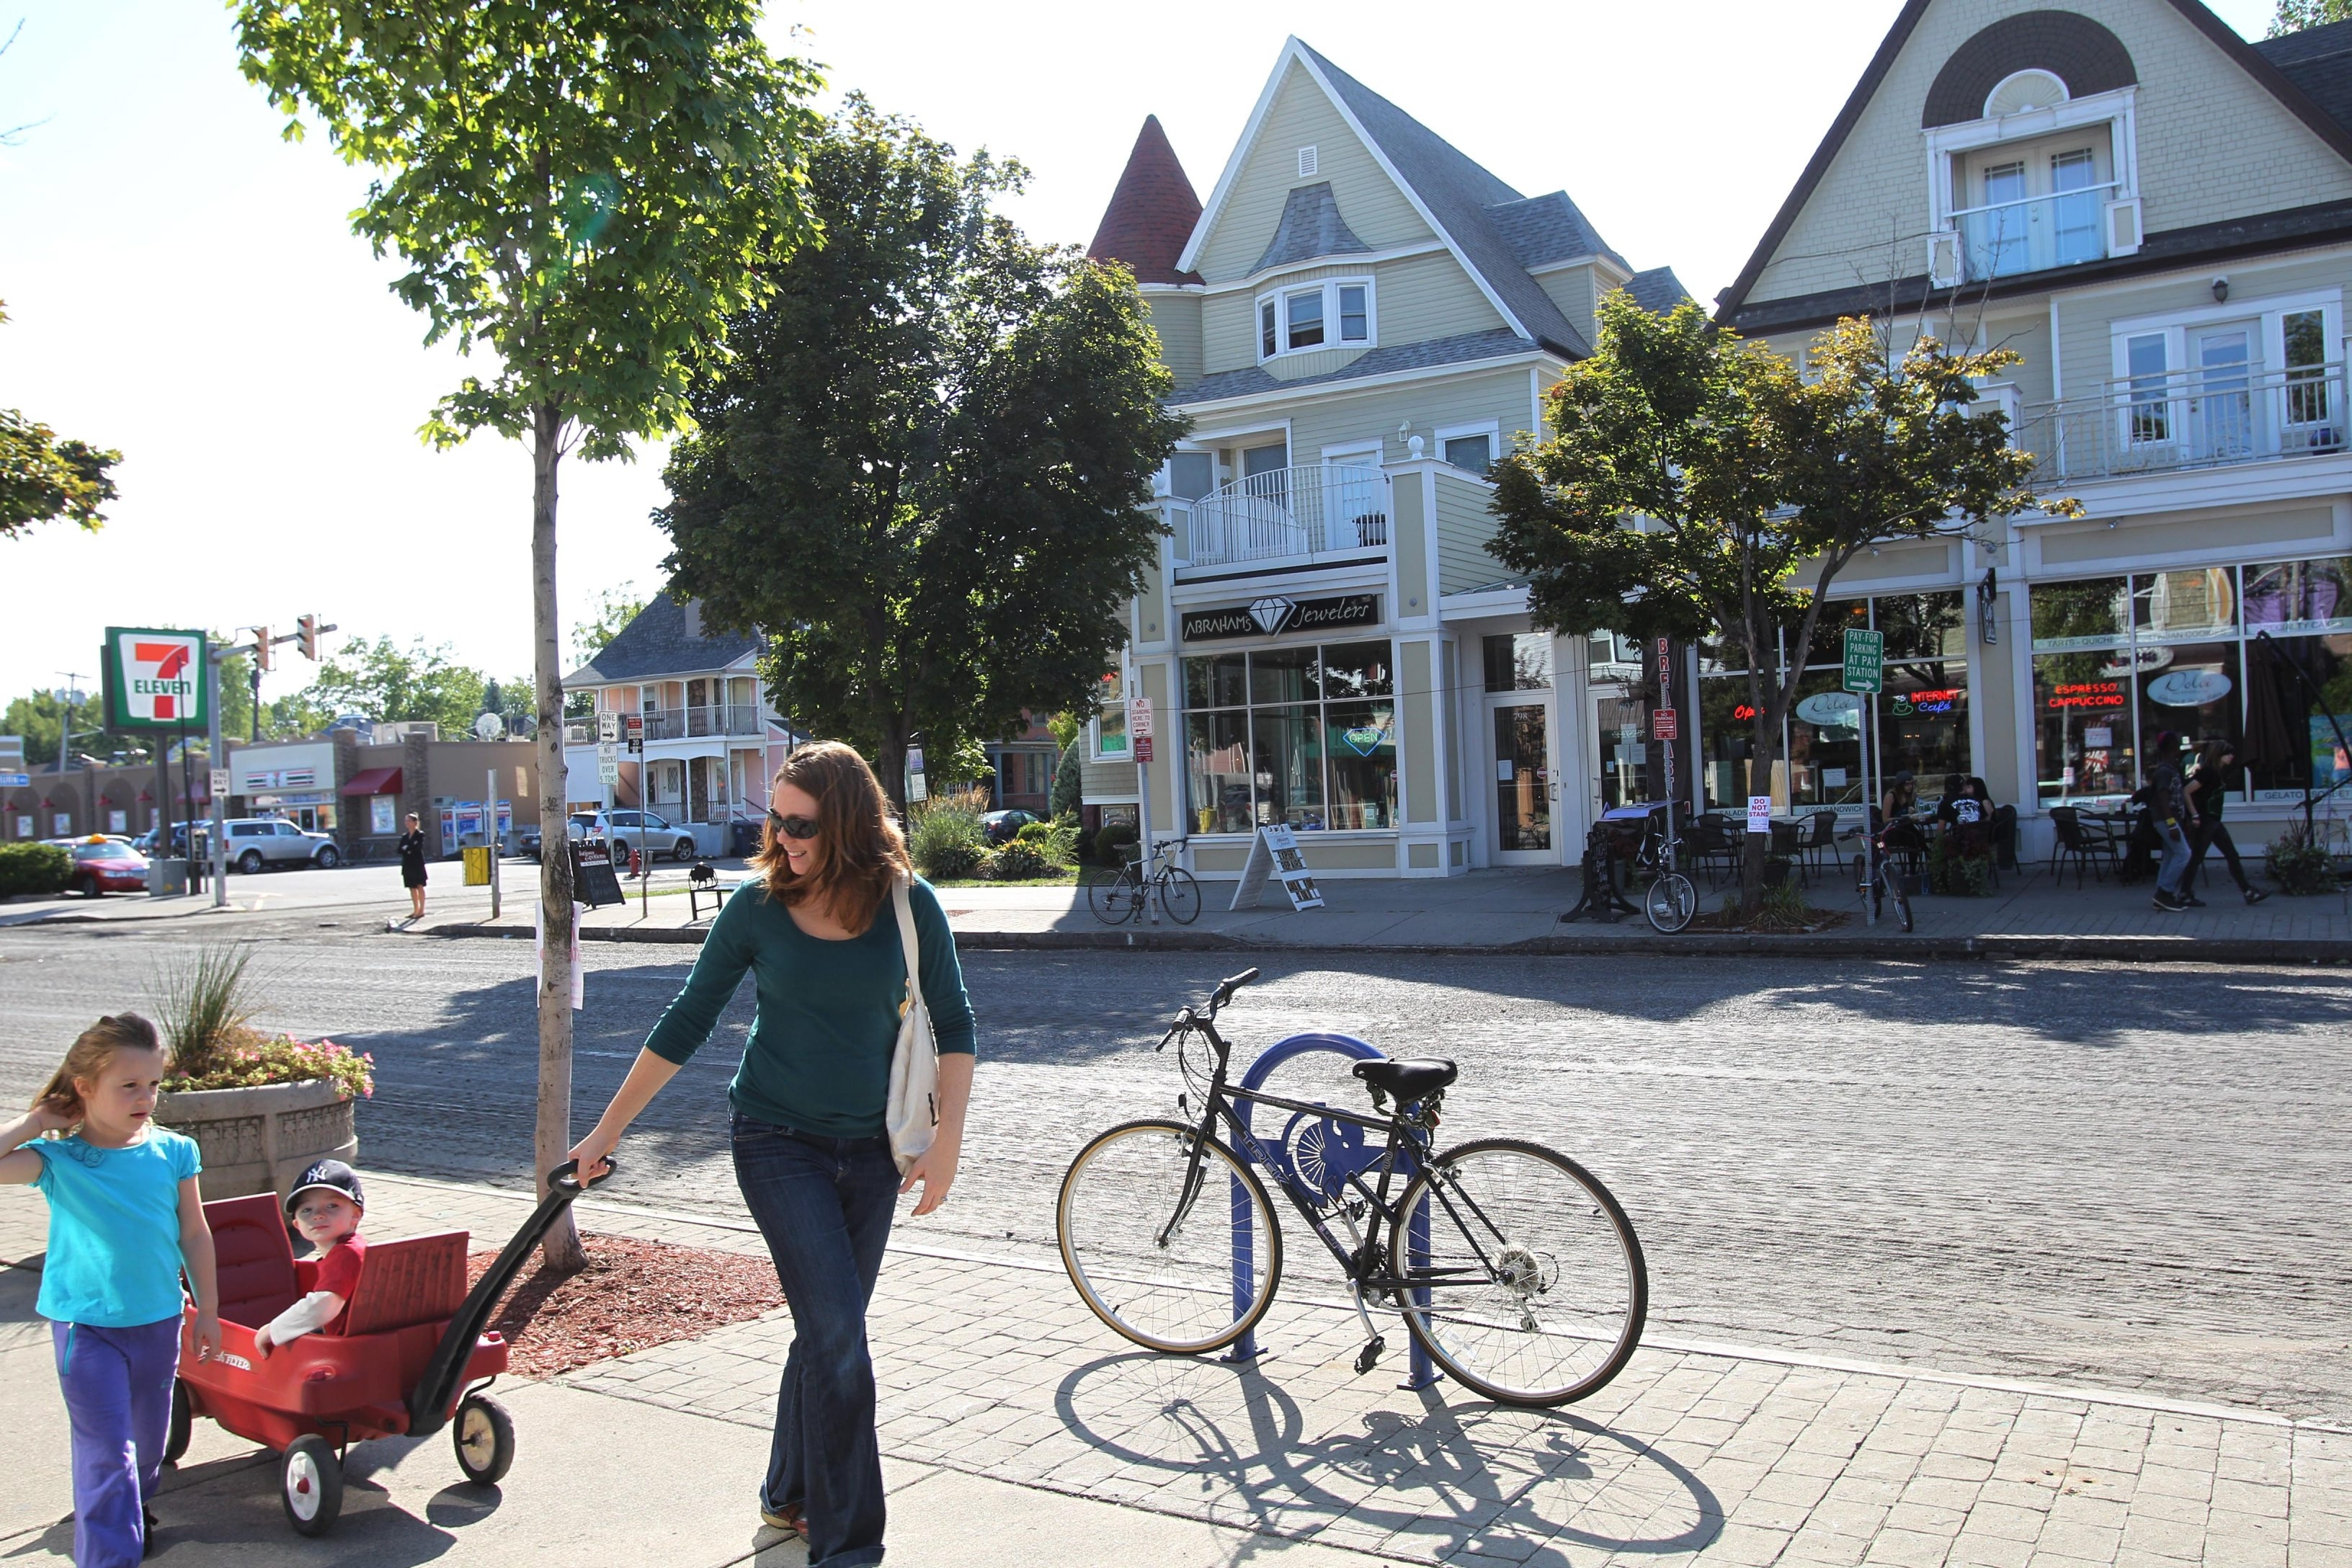 Sharon Cantillon/Buffalo News file photo      The Buffalo Green Code, a new land-use plan being implemented on Elmwood Avenue and other city streets, promises to  bring a better quality of life for all.